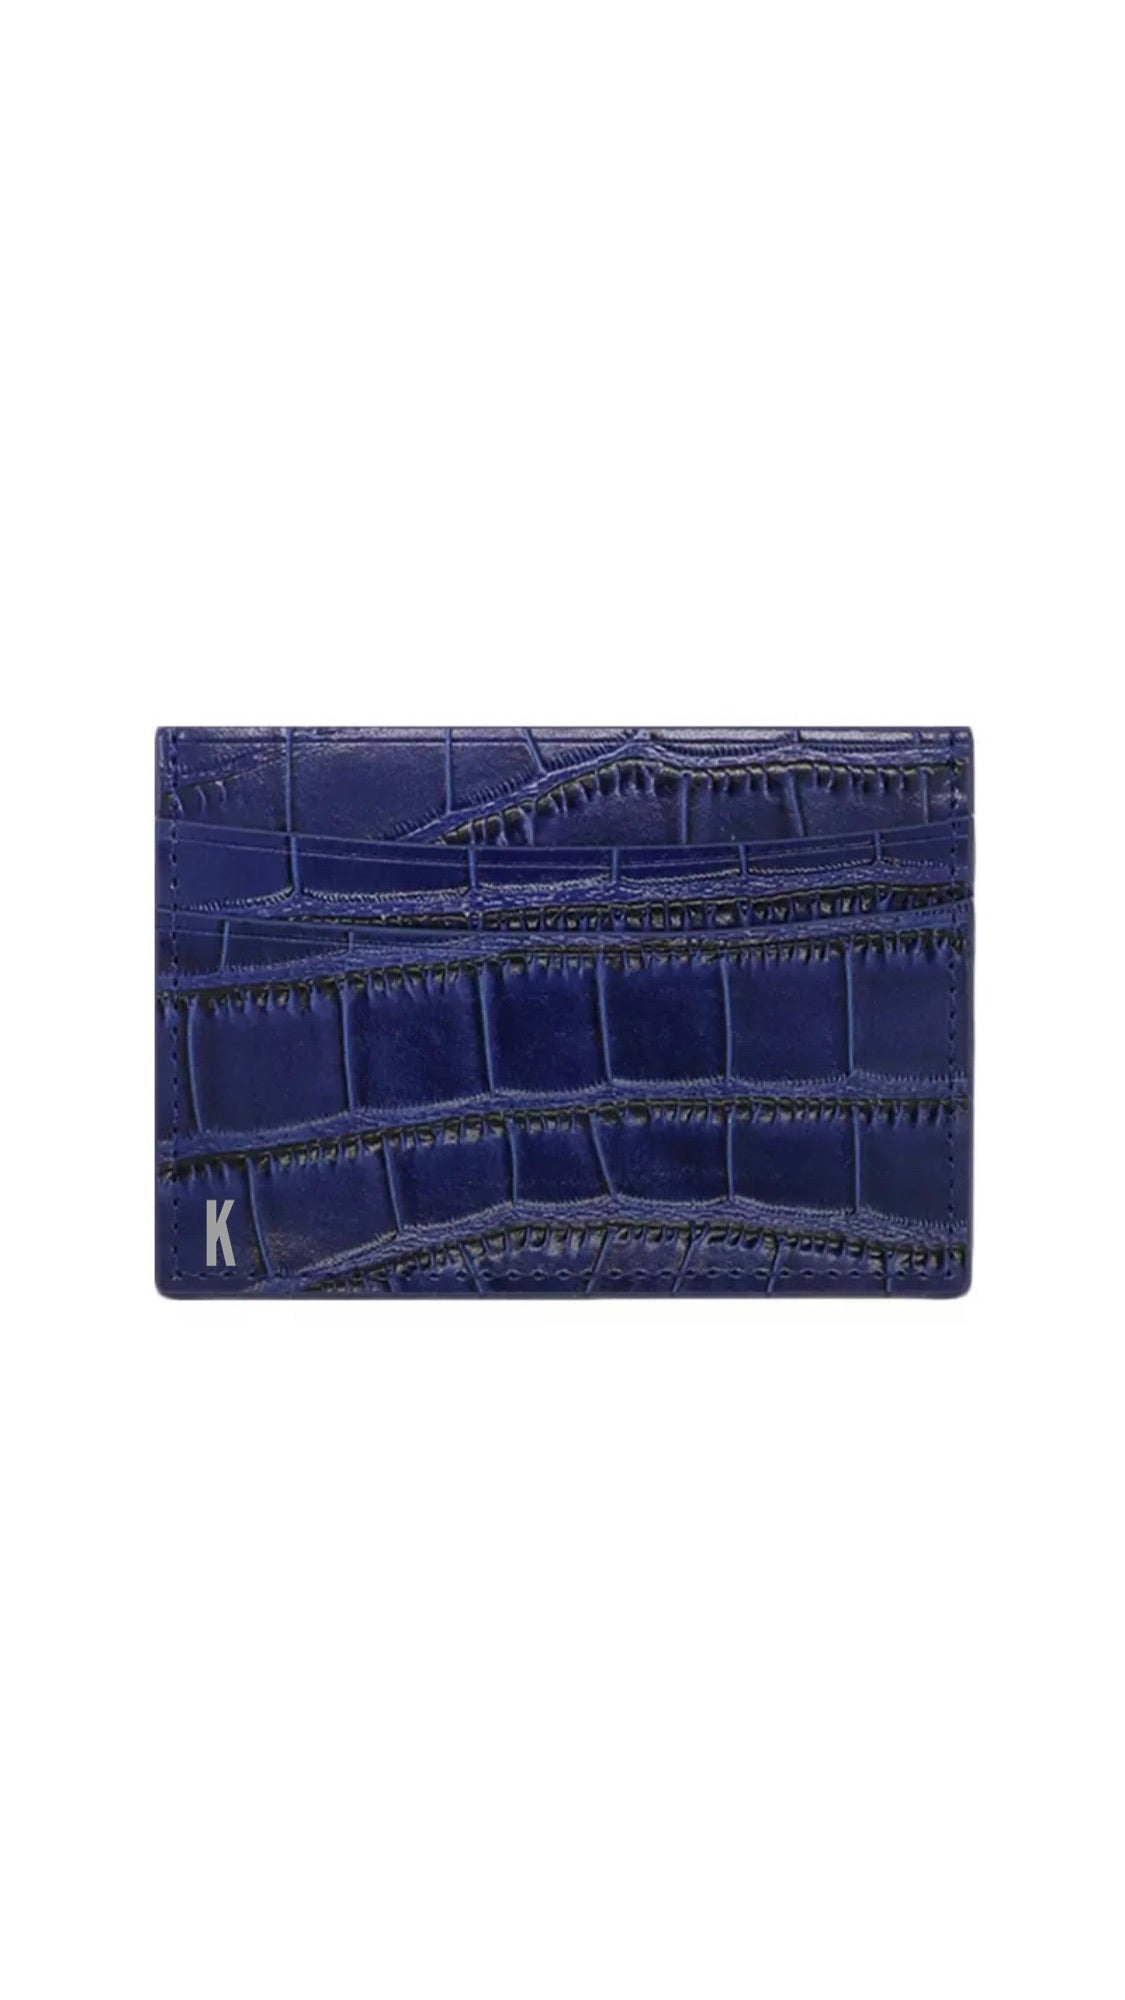 (Made-to-order) Navy Croc Embossed Vegan Leather Card Case